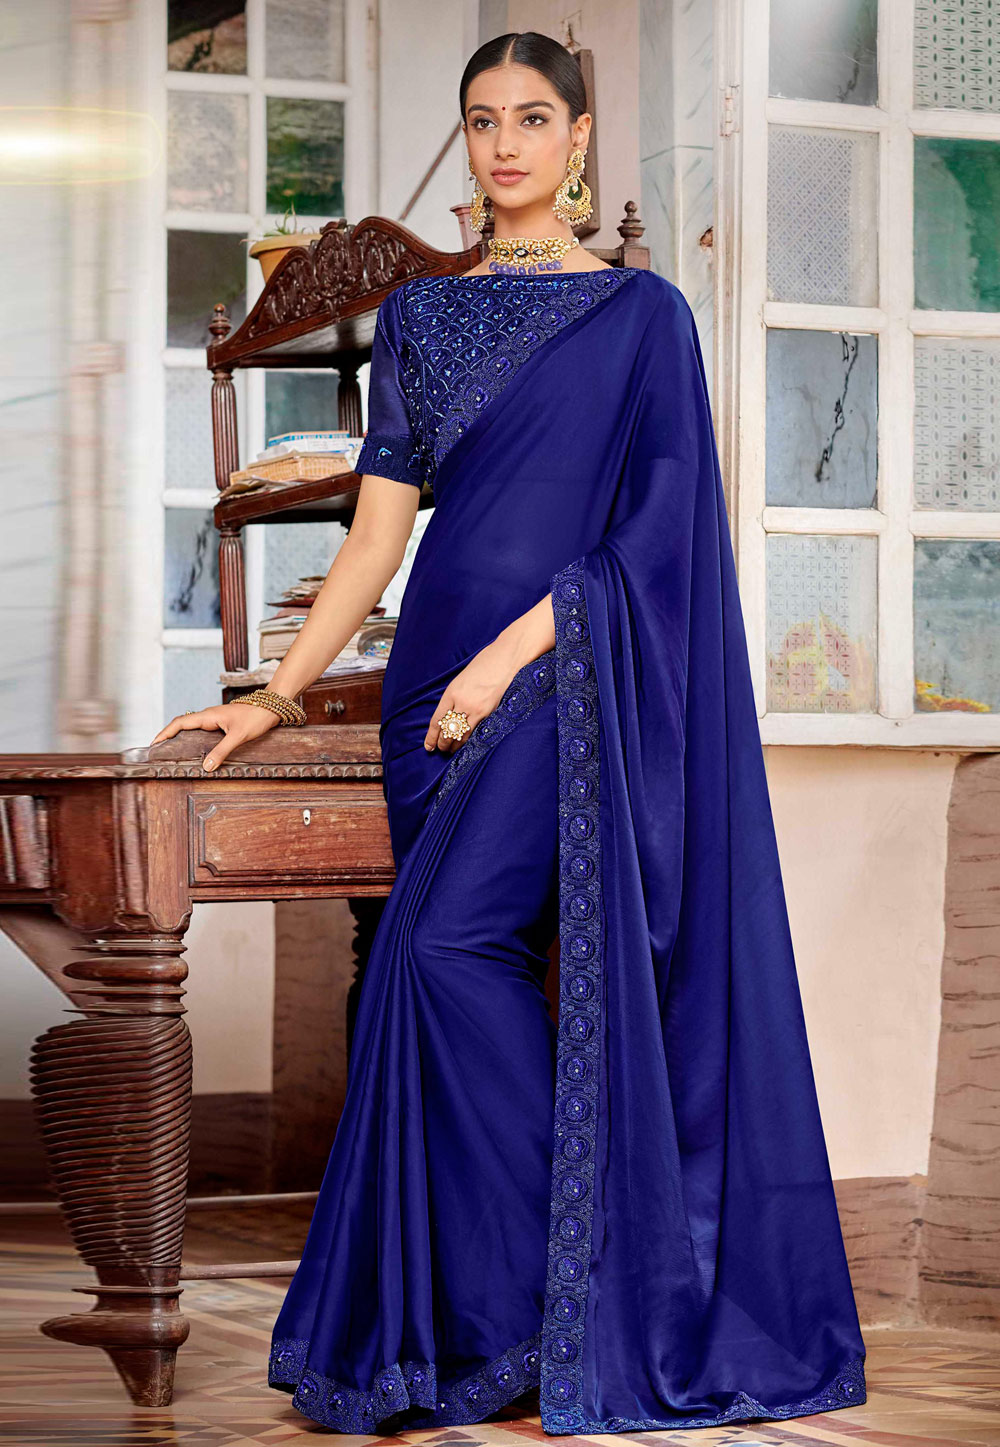 Blue Satin Saree With Blouse 161943